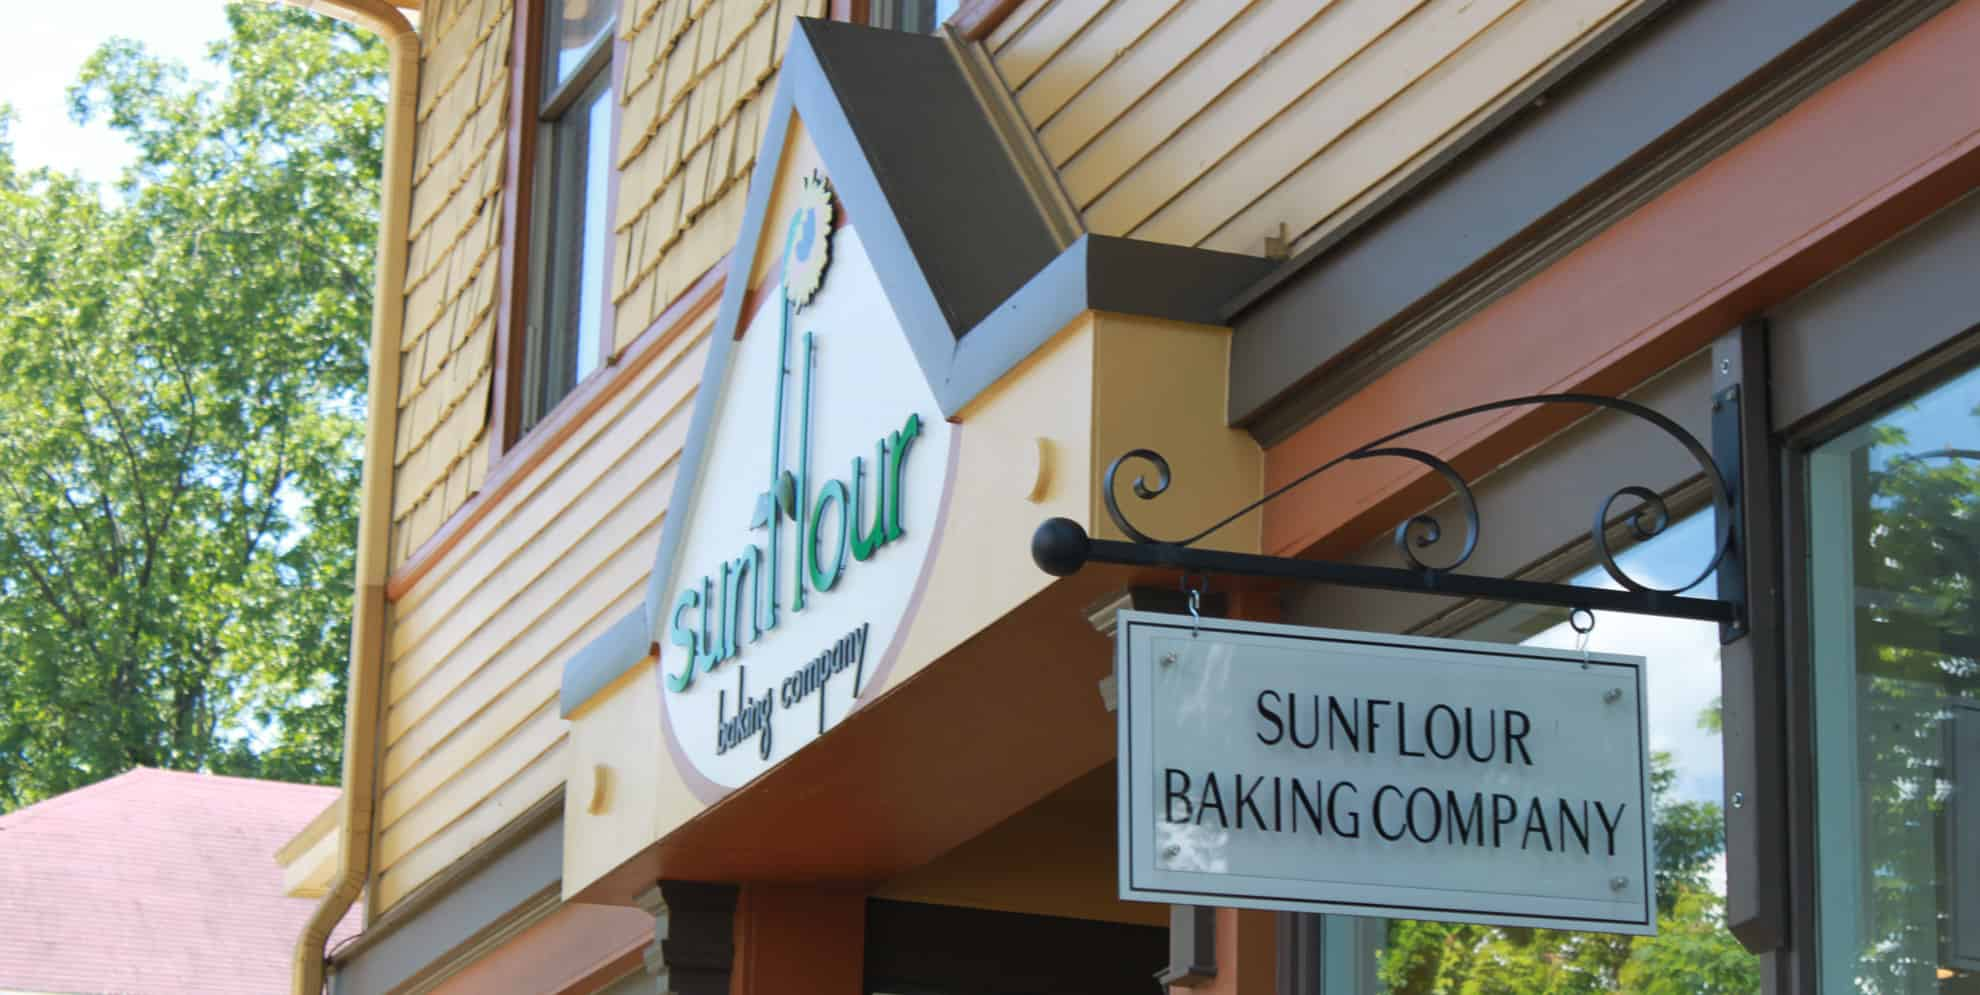 About Sunflour Baking Company